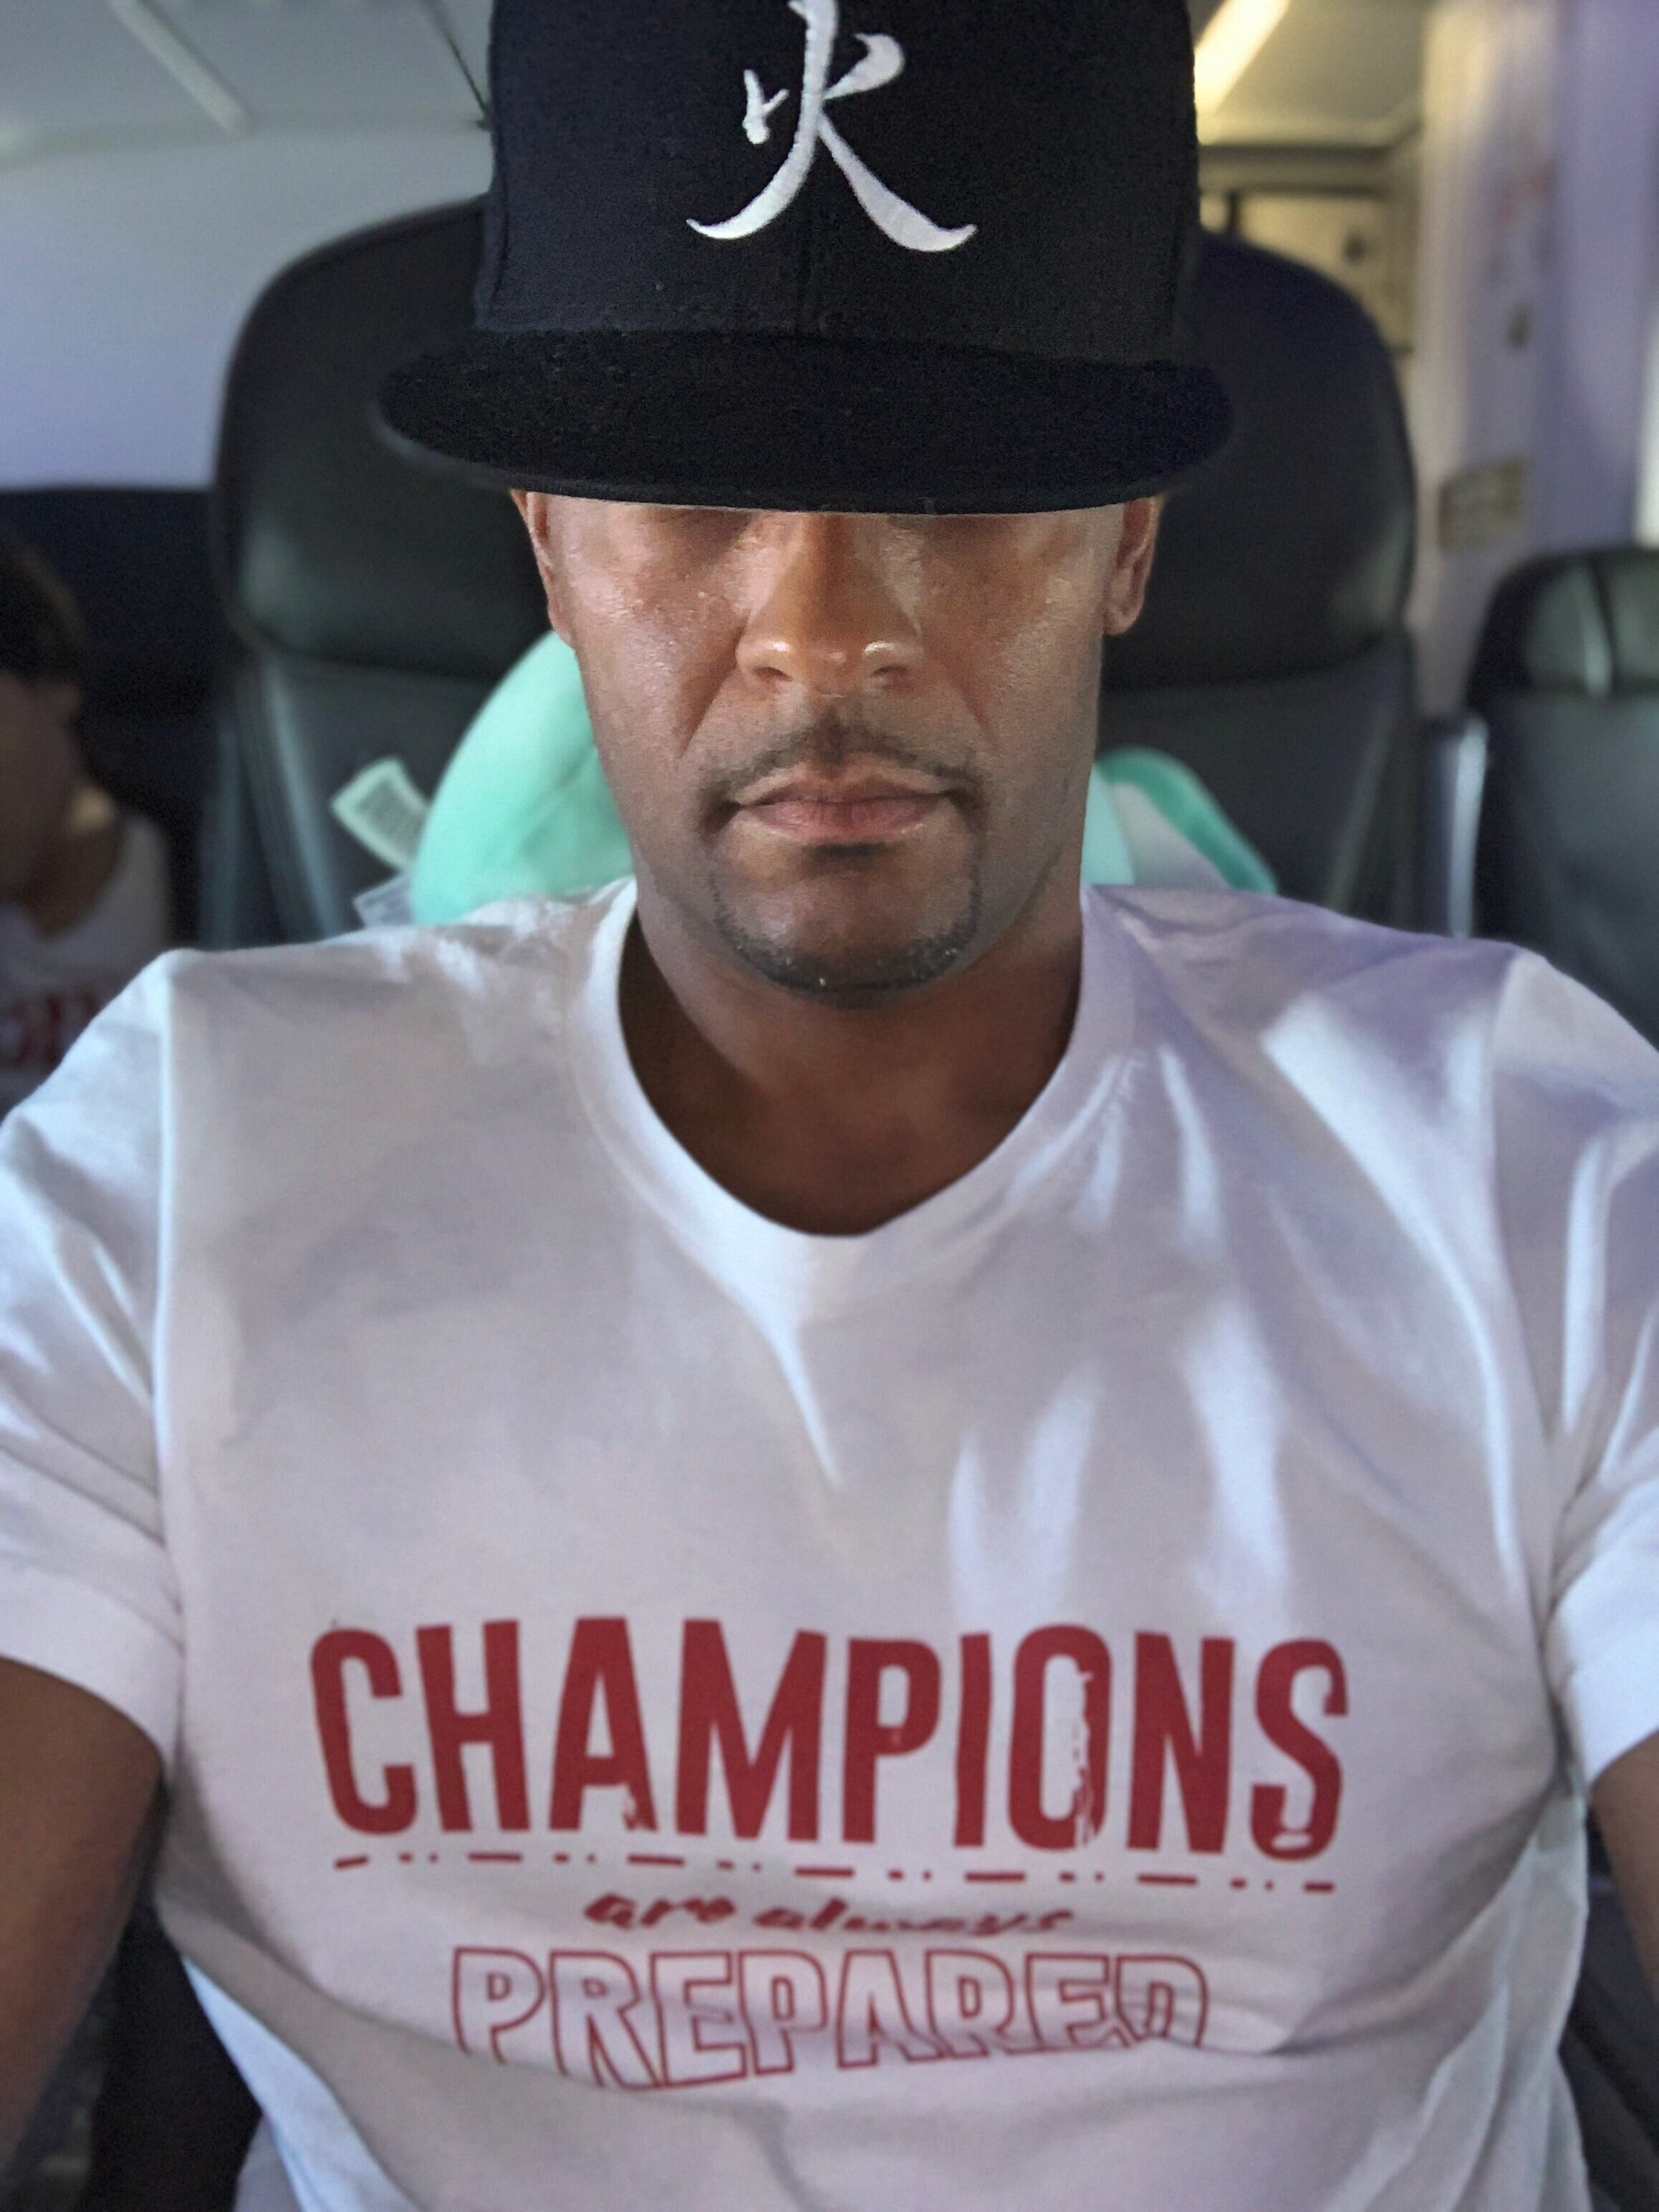 Travel ready wearing CHAMPIONS ARE ALWAYS PREPARED tee.